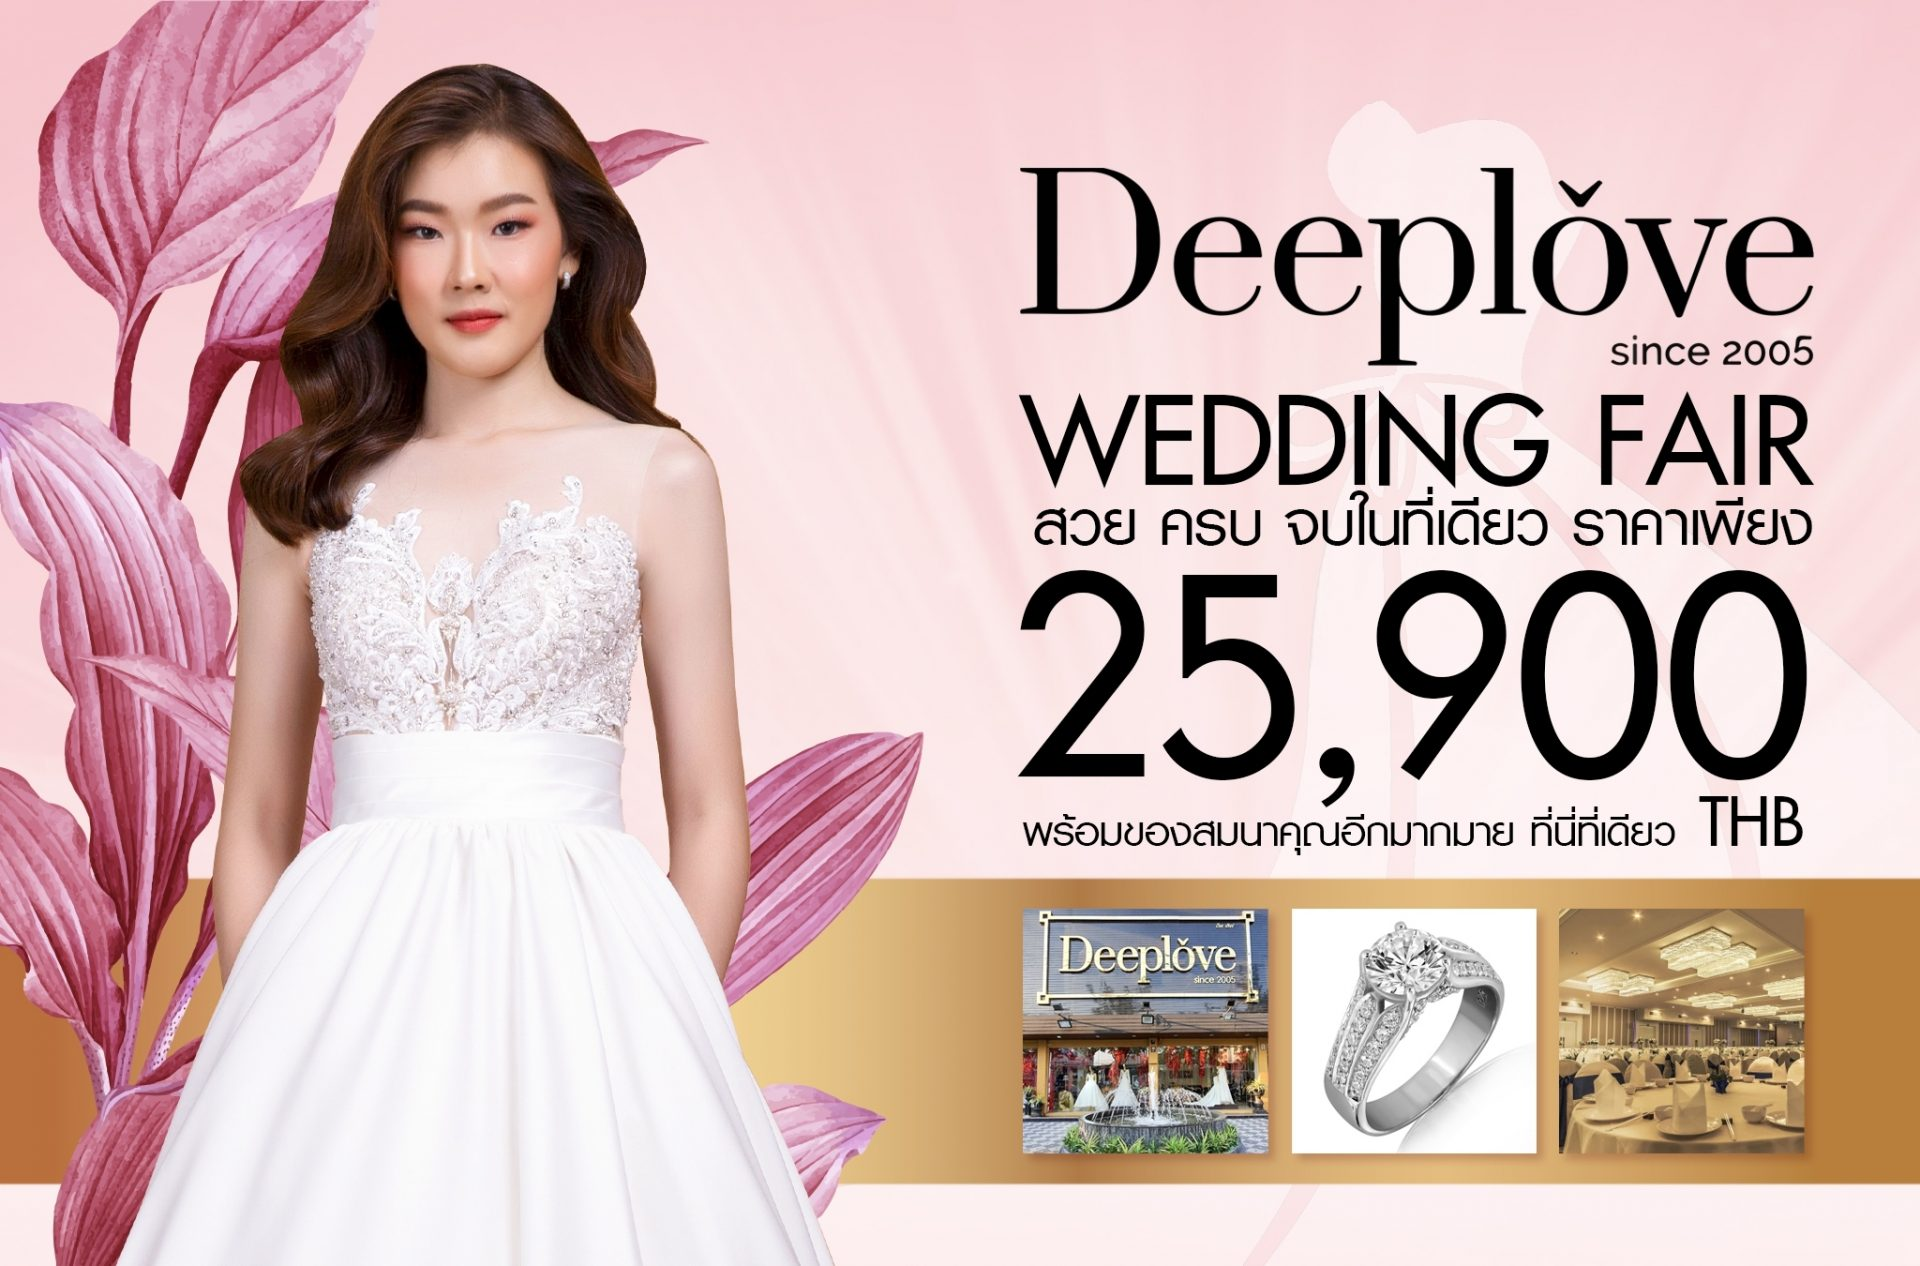 Deeplove Wedding Fair 2020